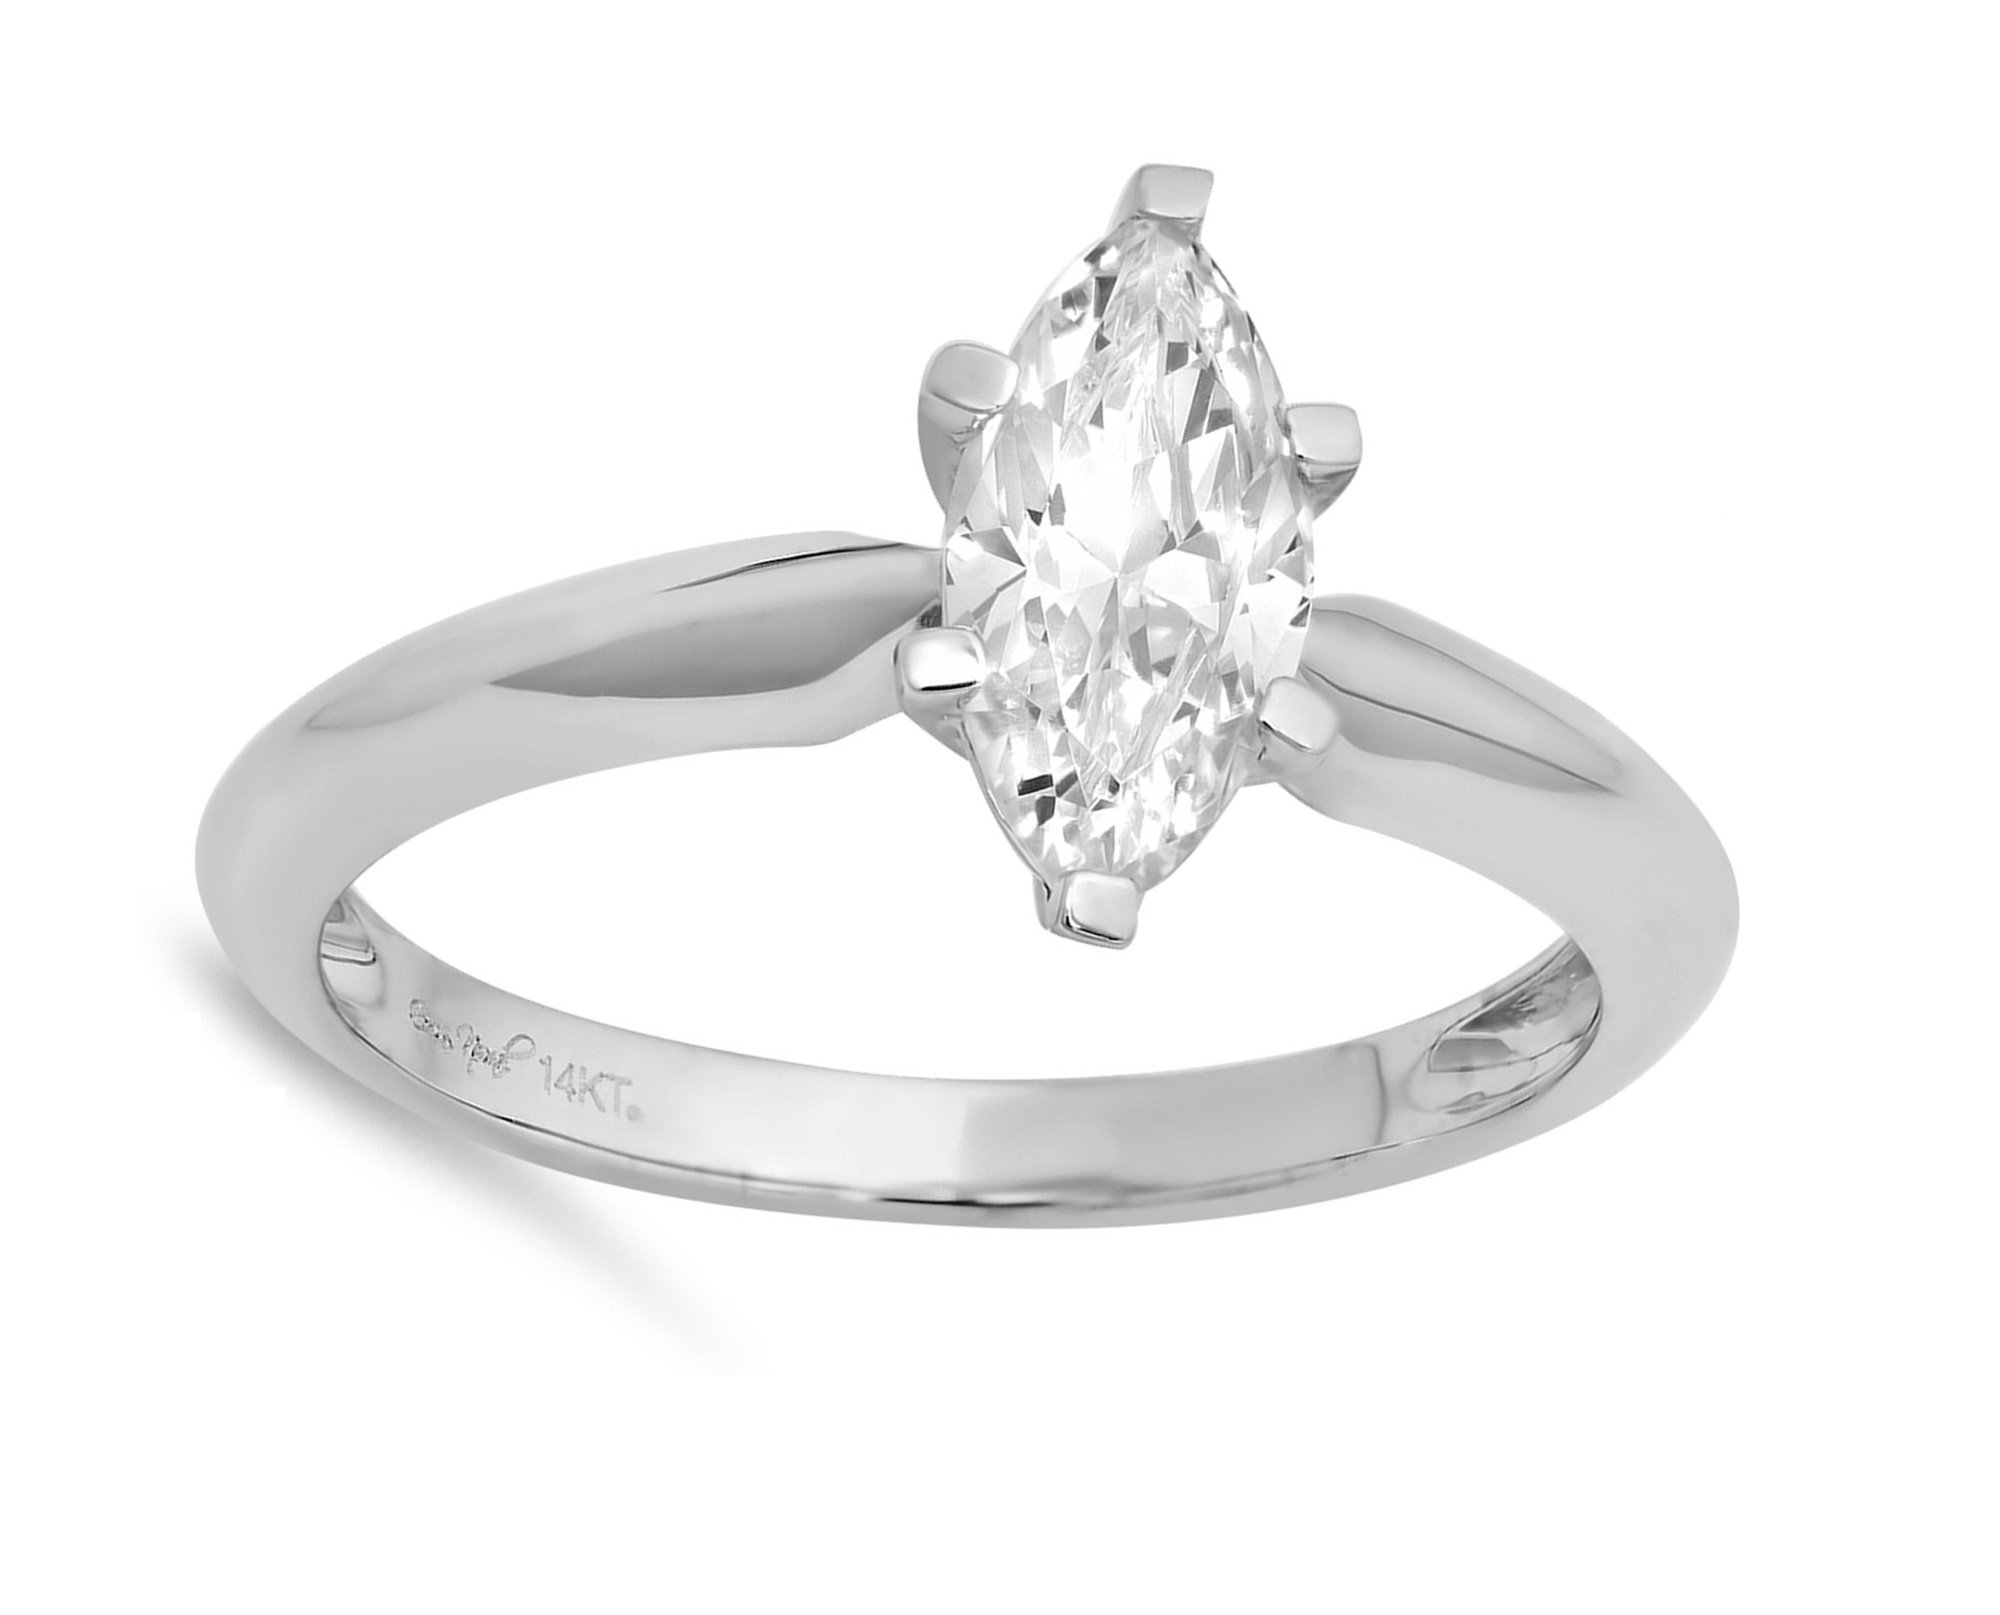 Clara Pucci 1.2 Ct Marquise Brilliant Cut Solitaire Engagement Wedding Bridal Anniversary Ring 14K White Gold, Size 7.25 by Clara Pucci